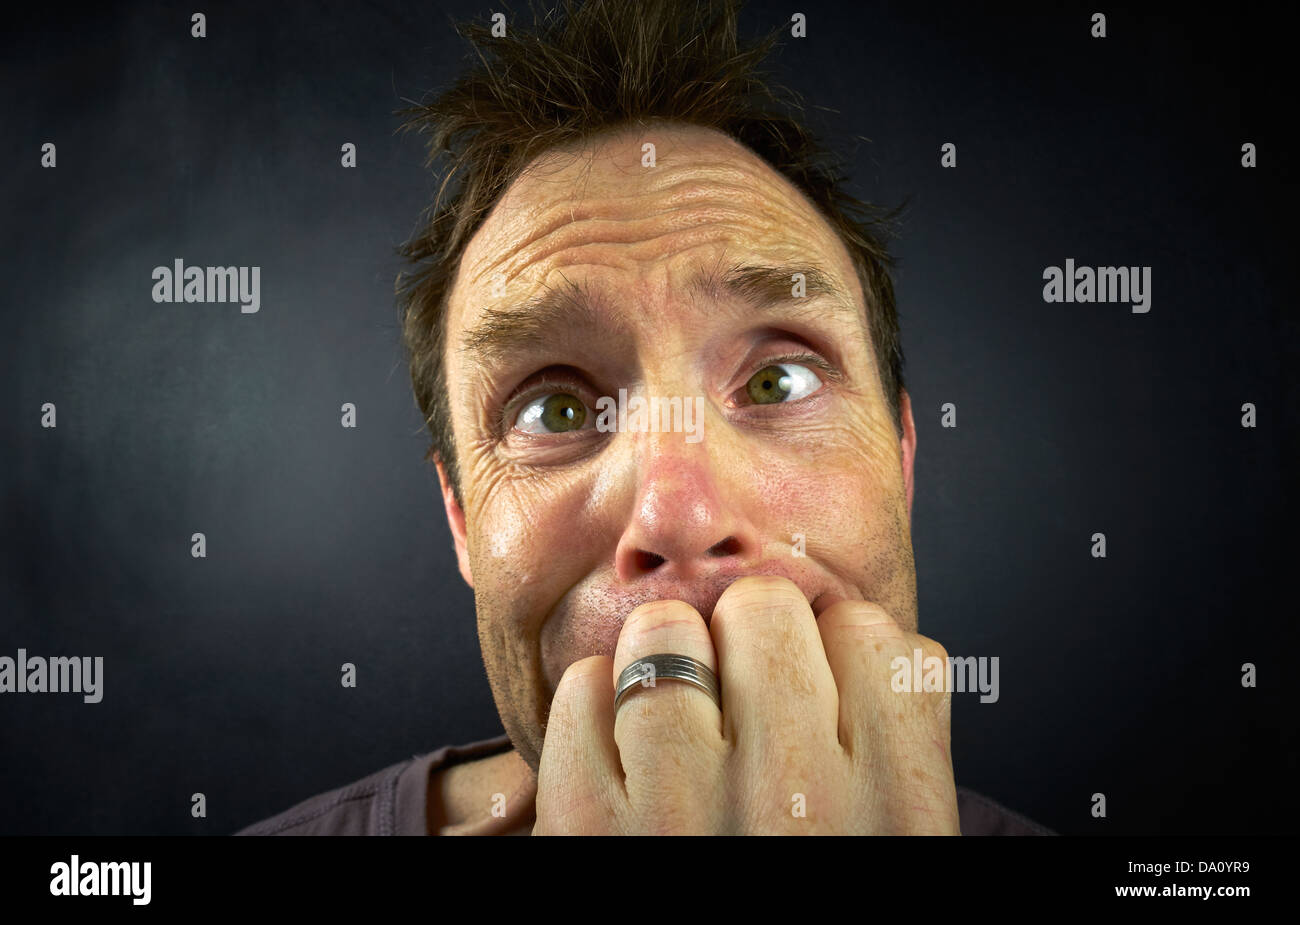 A worried Man - Stock Image